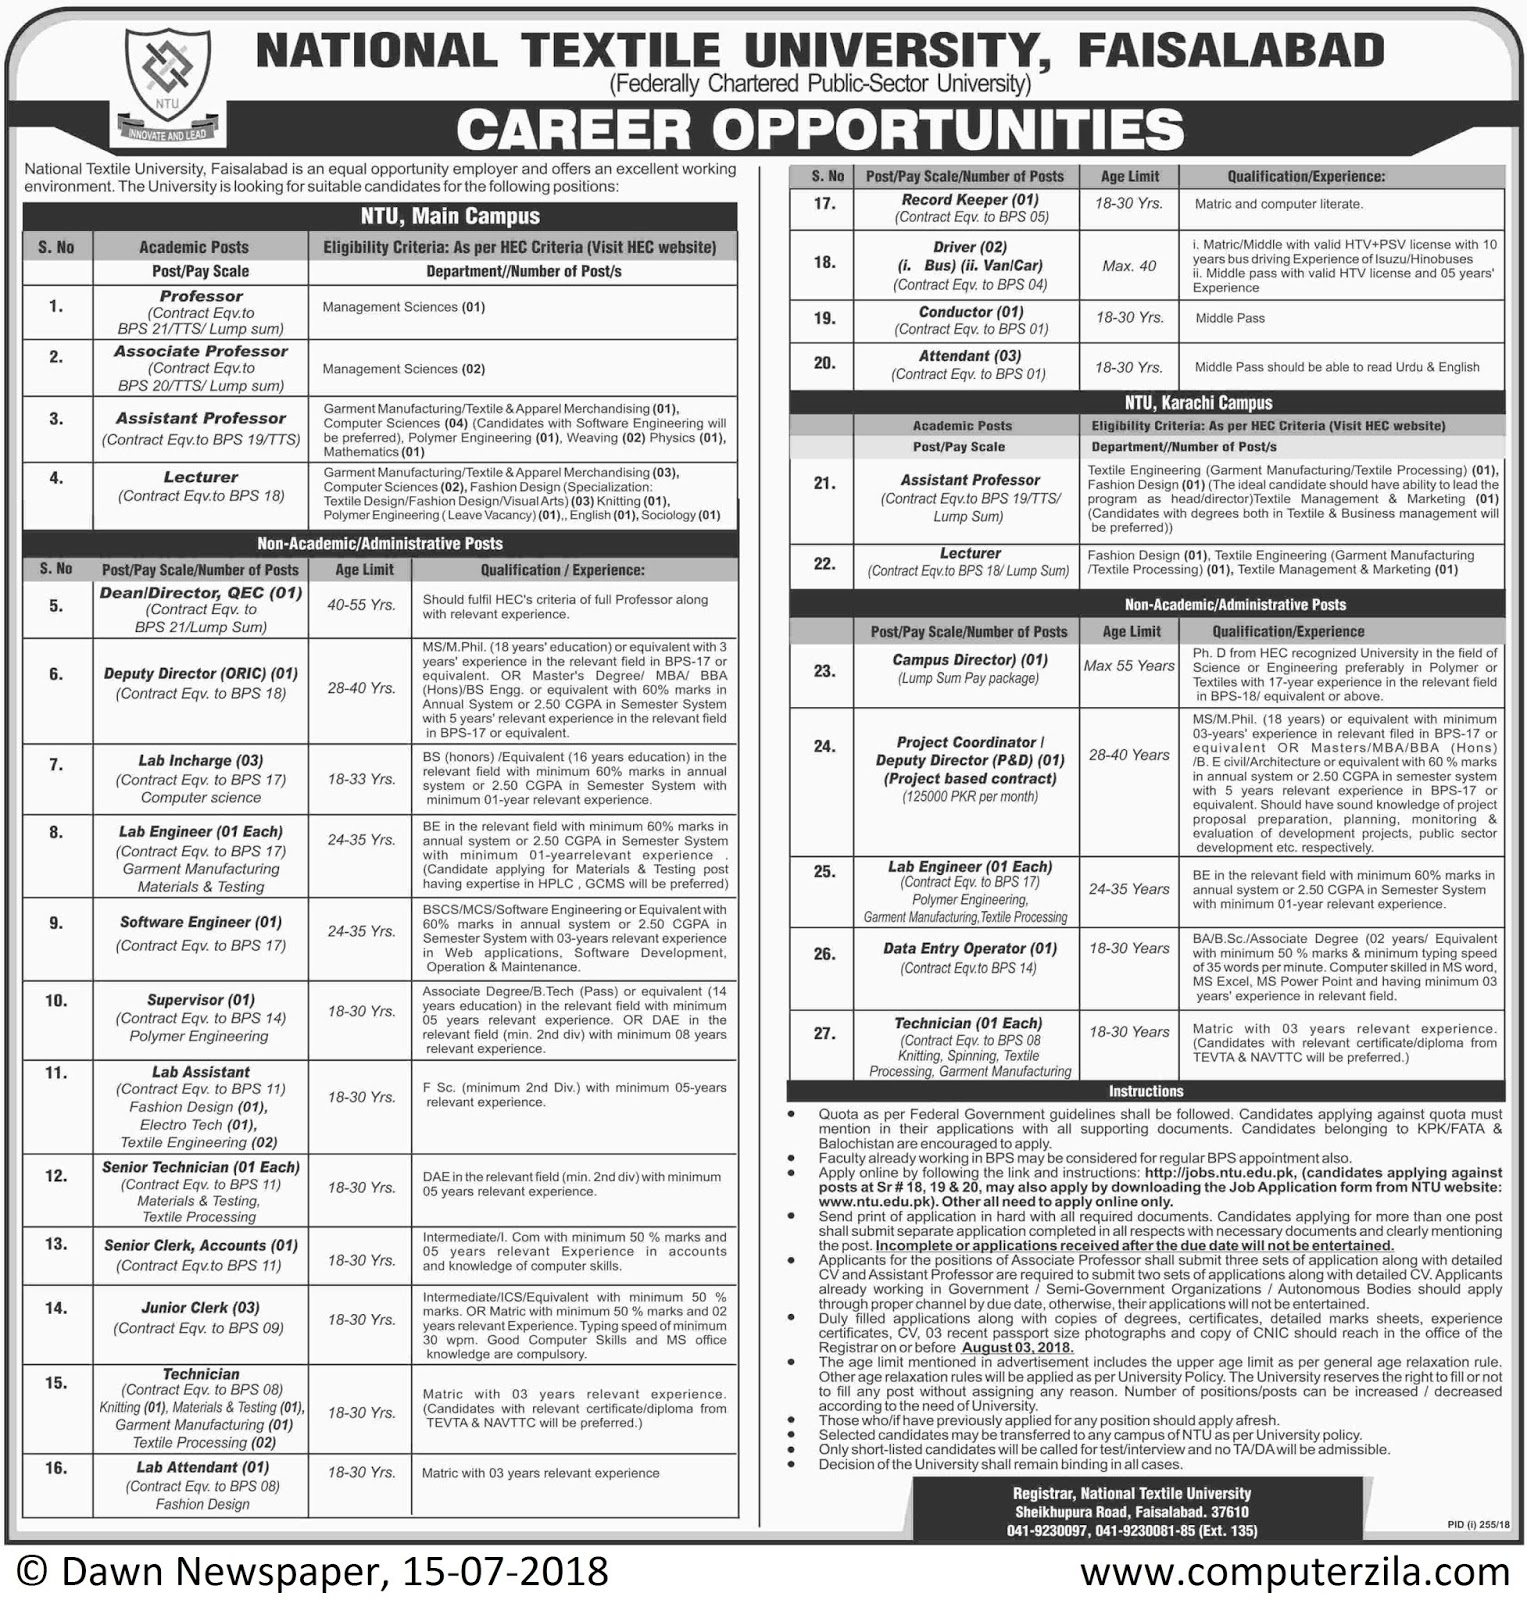 Career Opportunities at National Textile University, Faisalabad